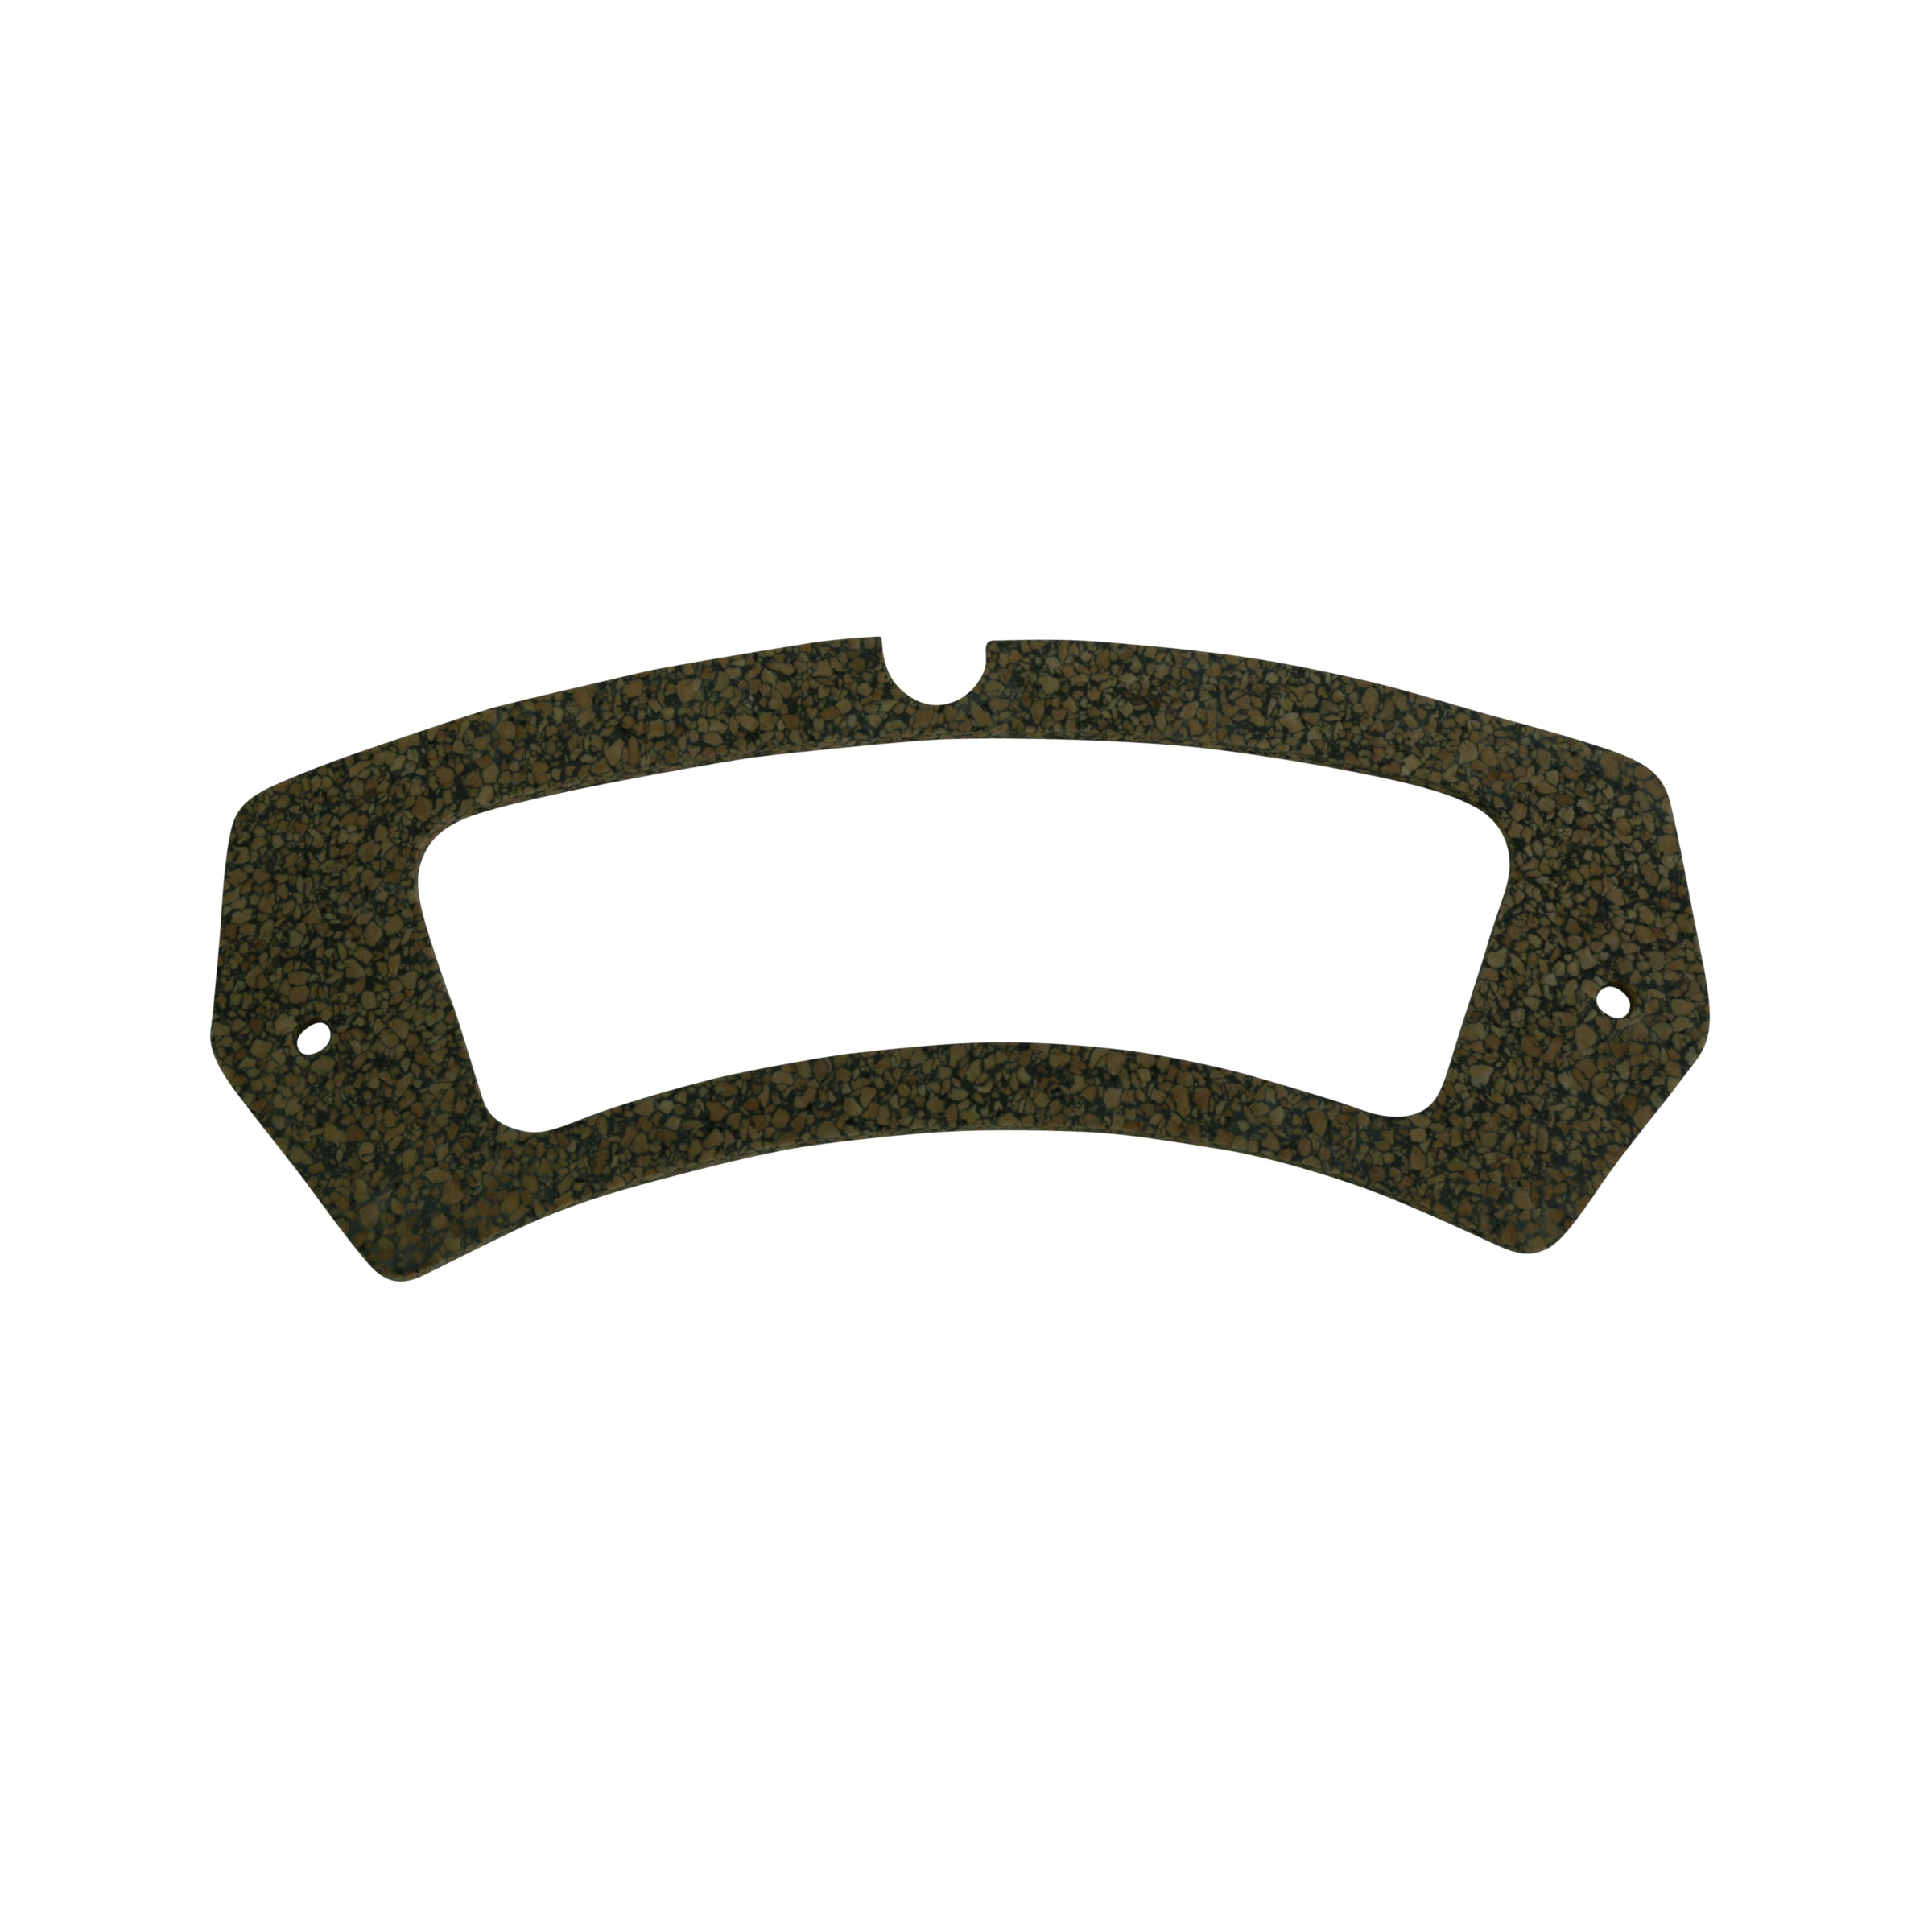 License Light Lens Gasket • 1933-36 Ford Passenger & 1946-47 Ford Pickup